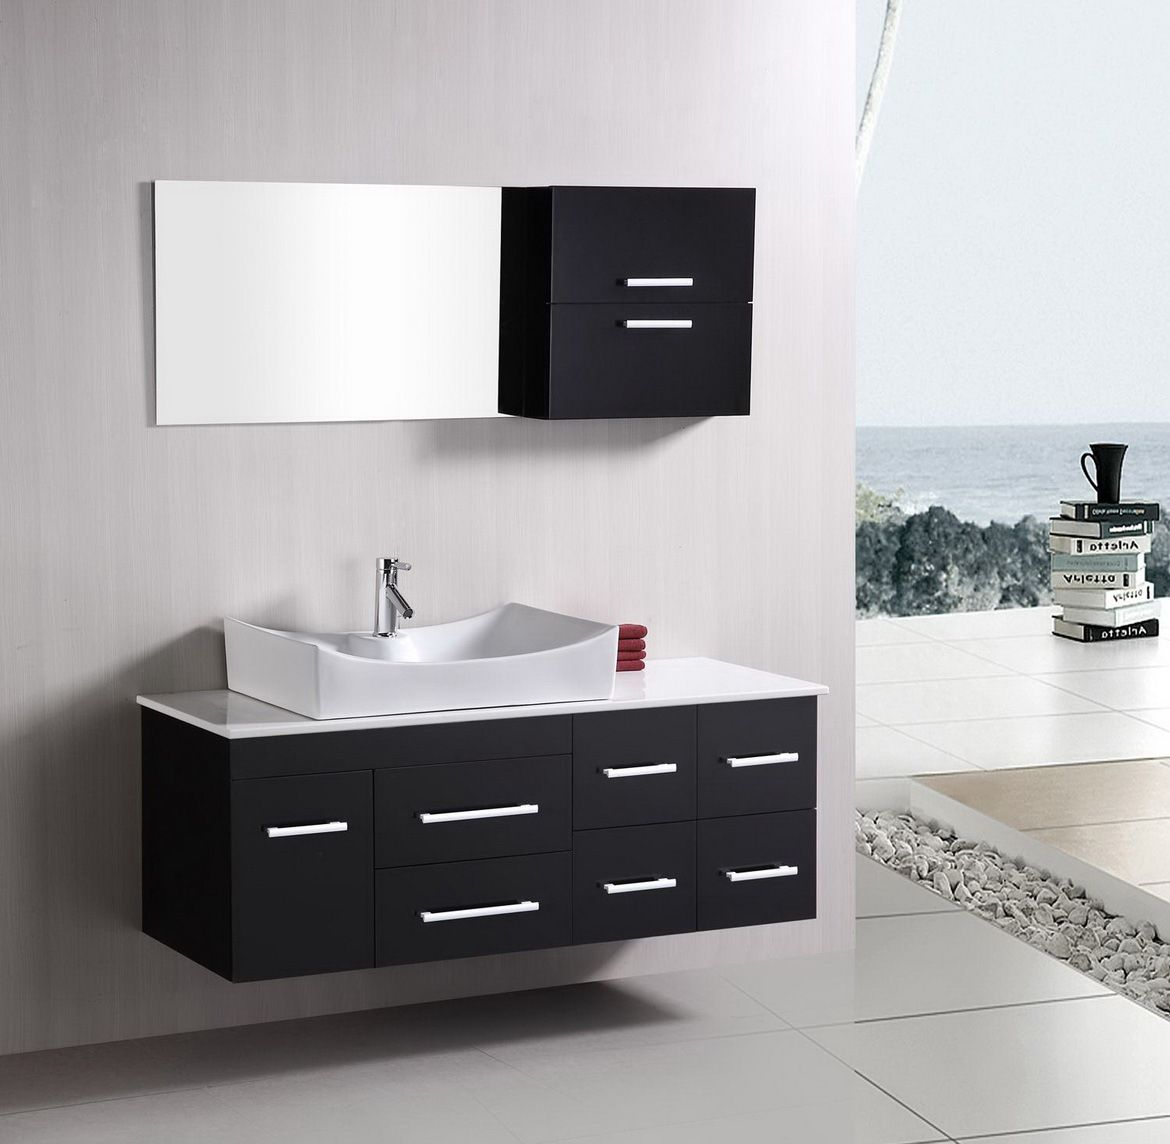 Charmant Small Contemporary Bathroom Vanities Design